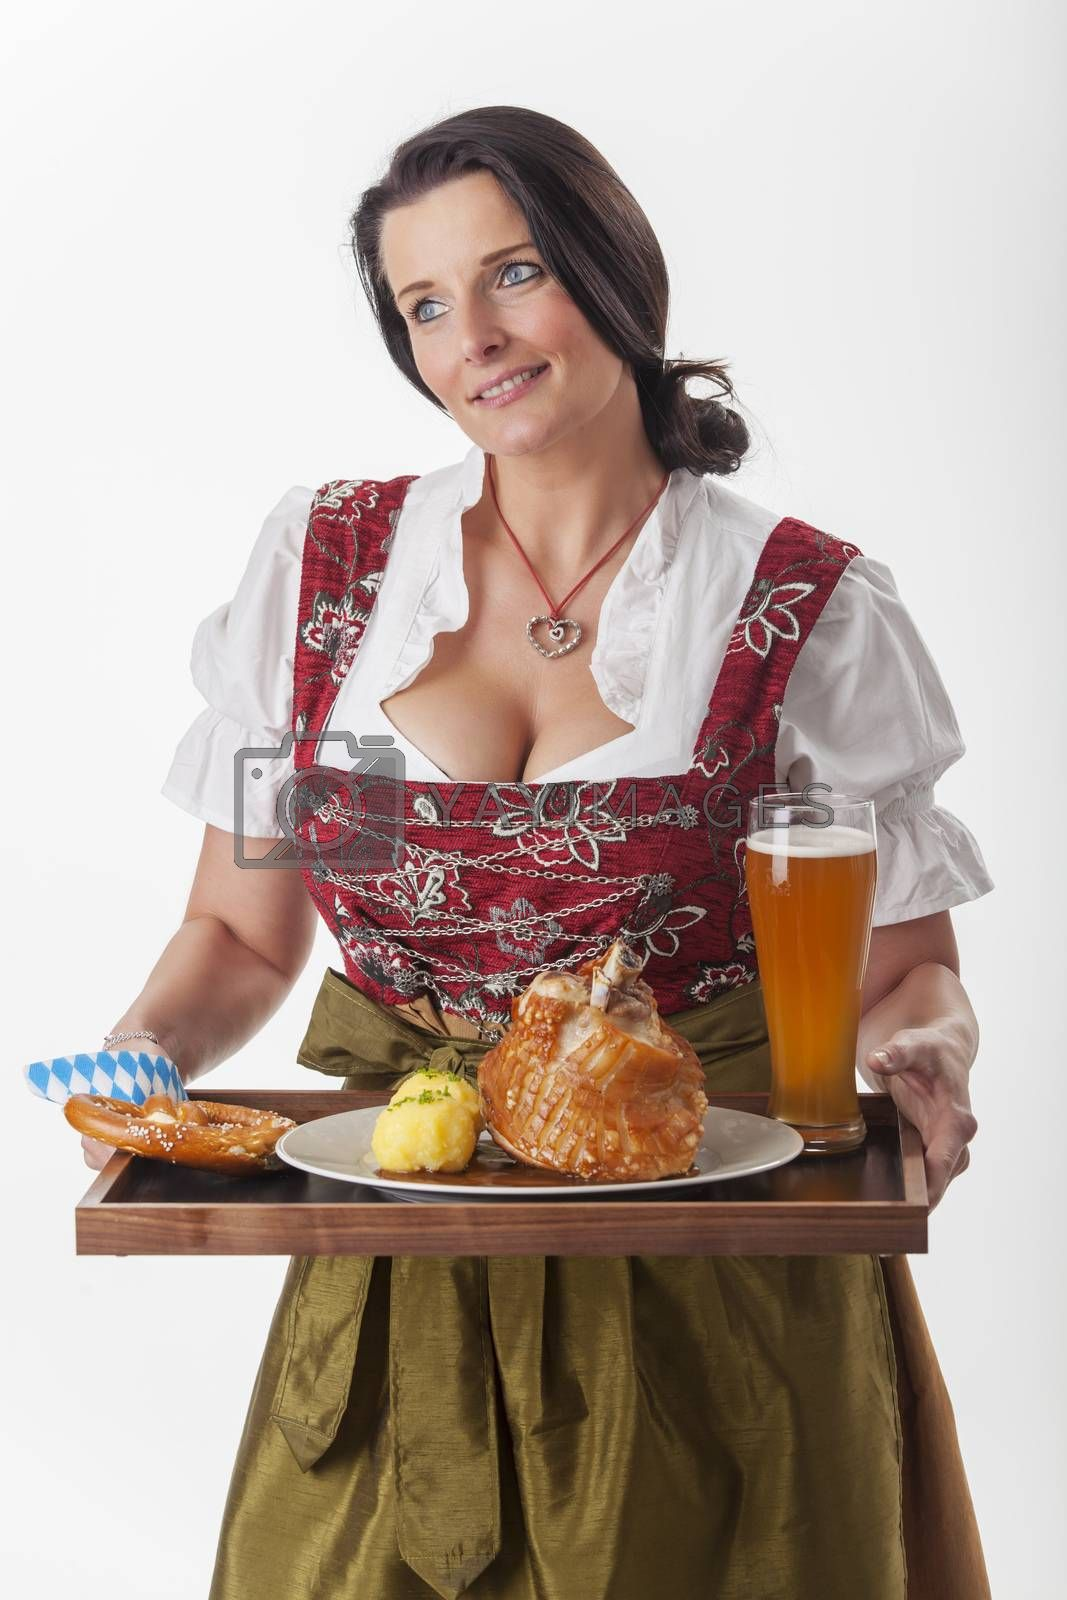 bavarian woman in a dirndl serving food